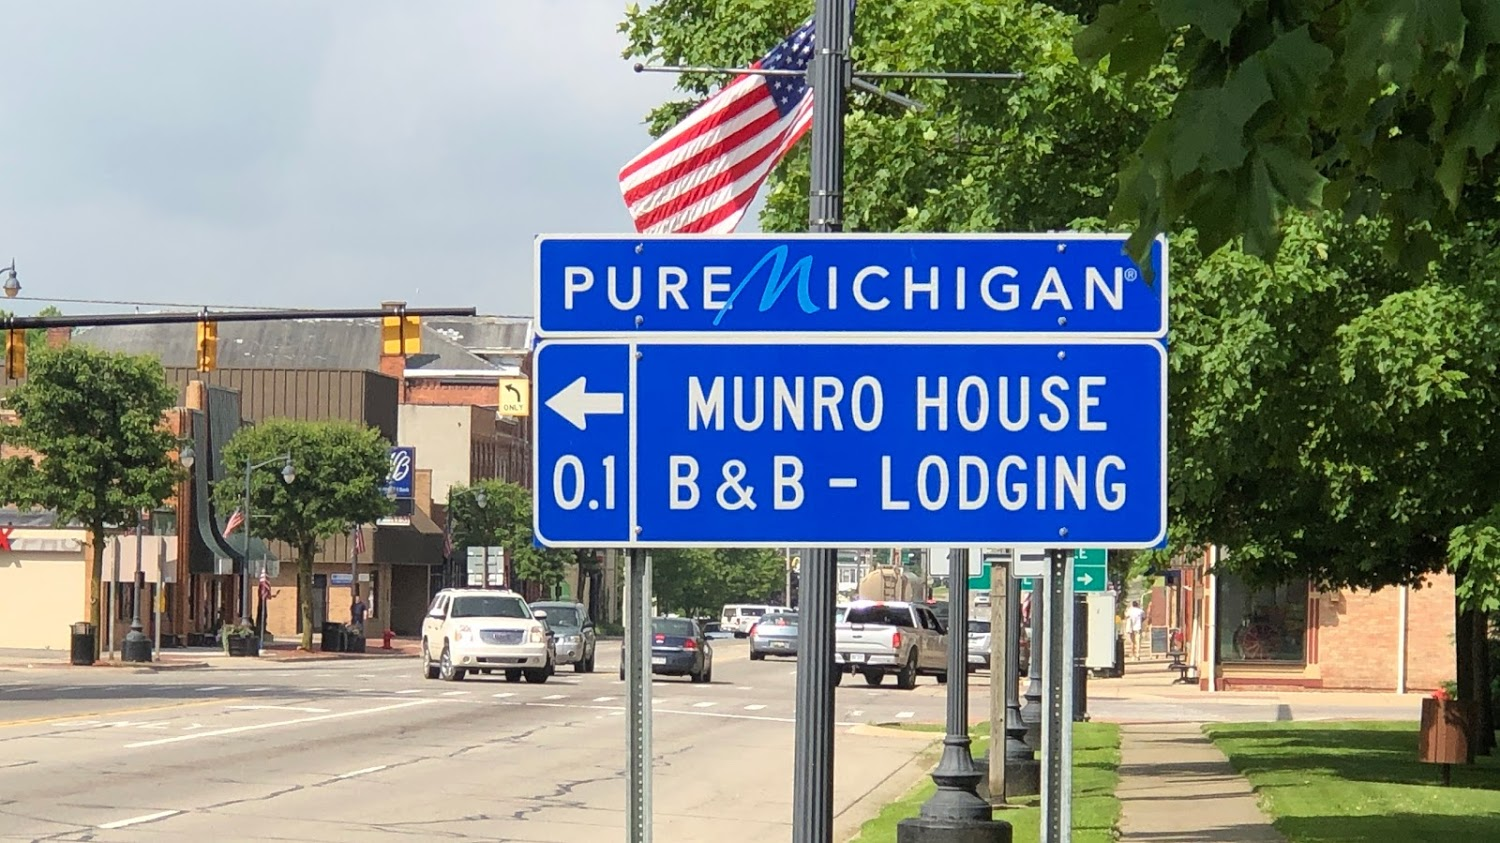 blue highway sign with white lettering  and pure michigan motto